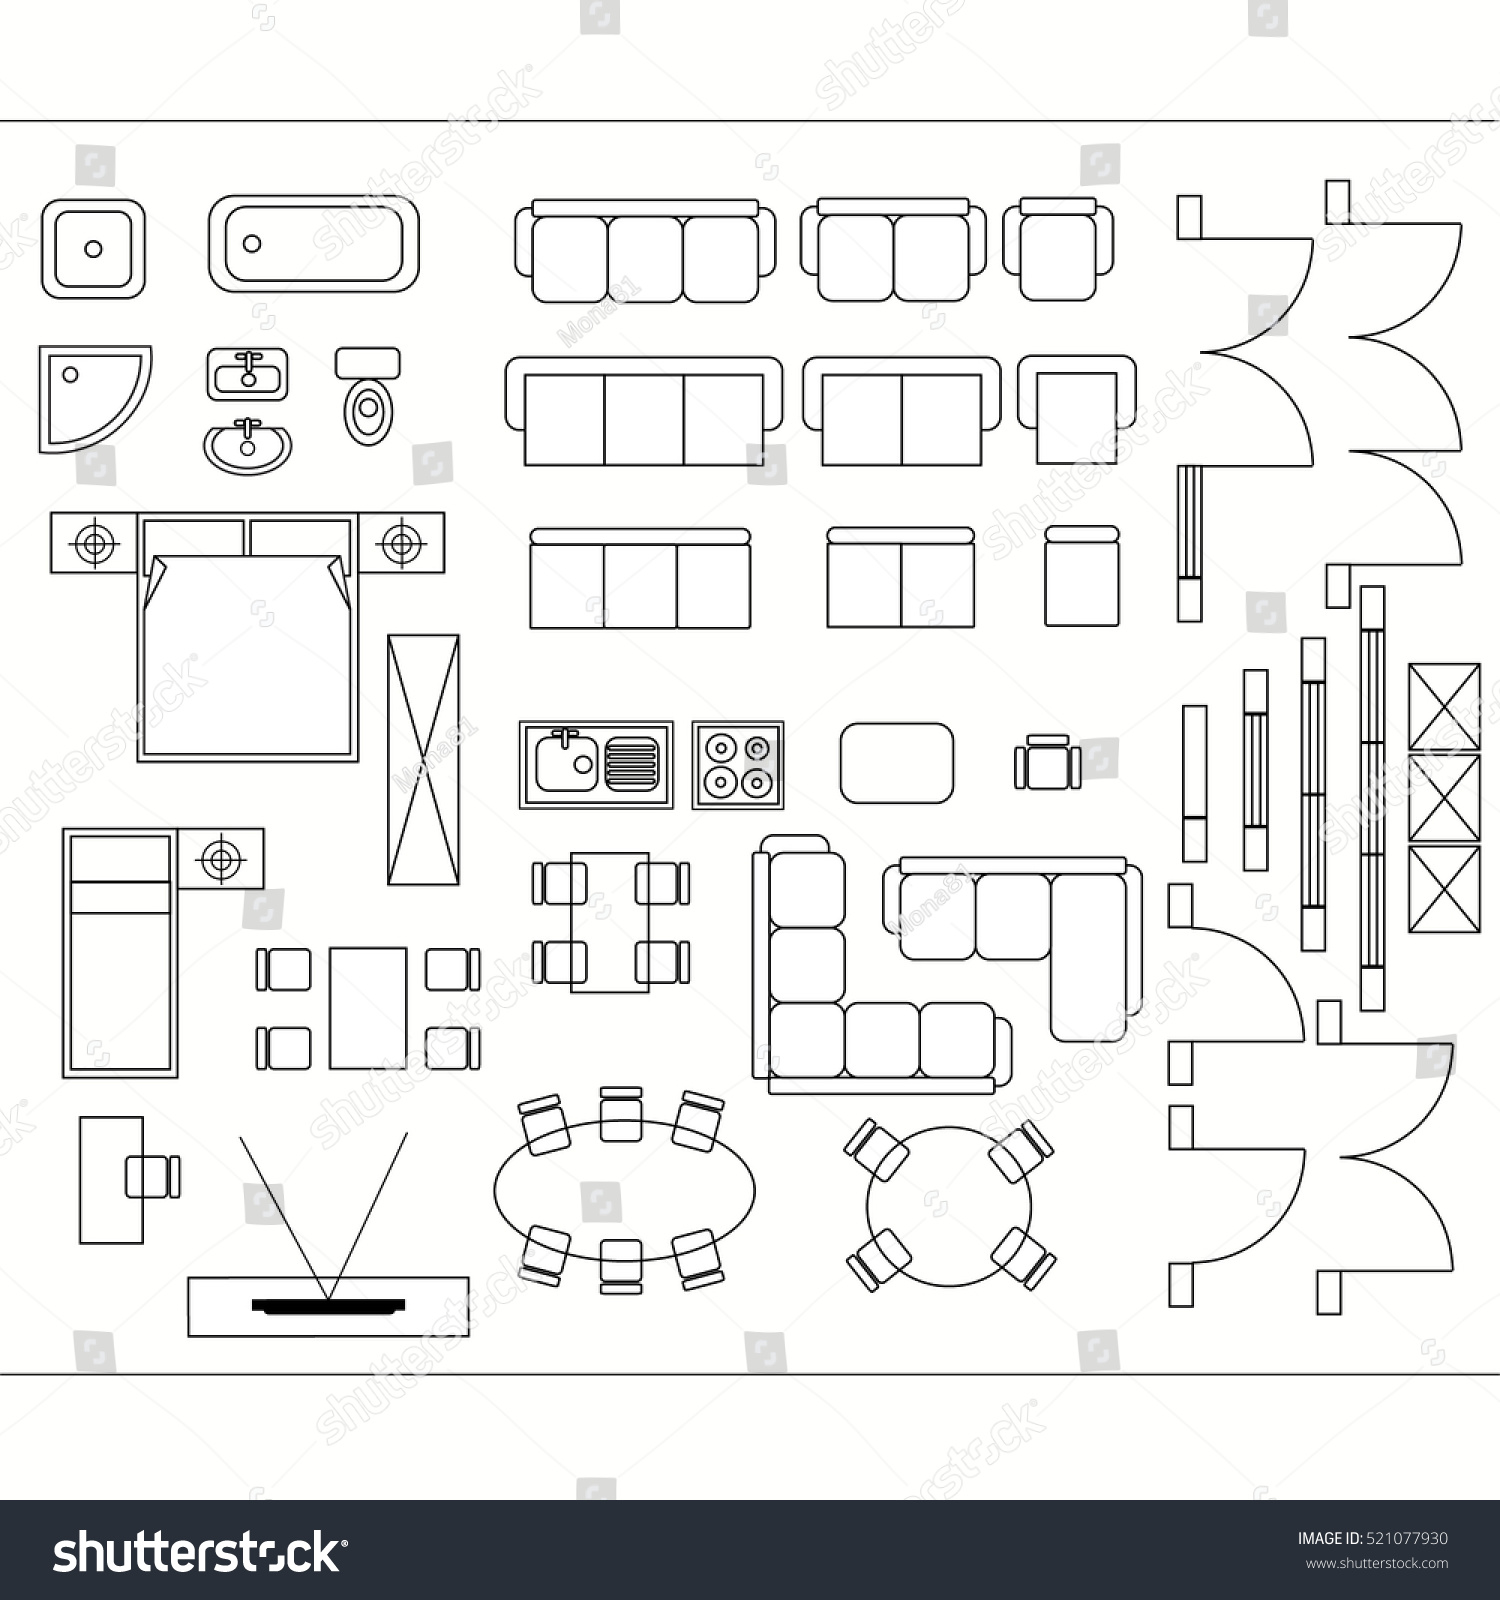 royalty free architectural drawing for planning 521077930 stock photo. Black Bedroom Furniture Sets. Home Design Ideas